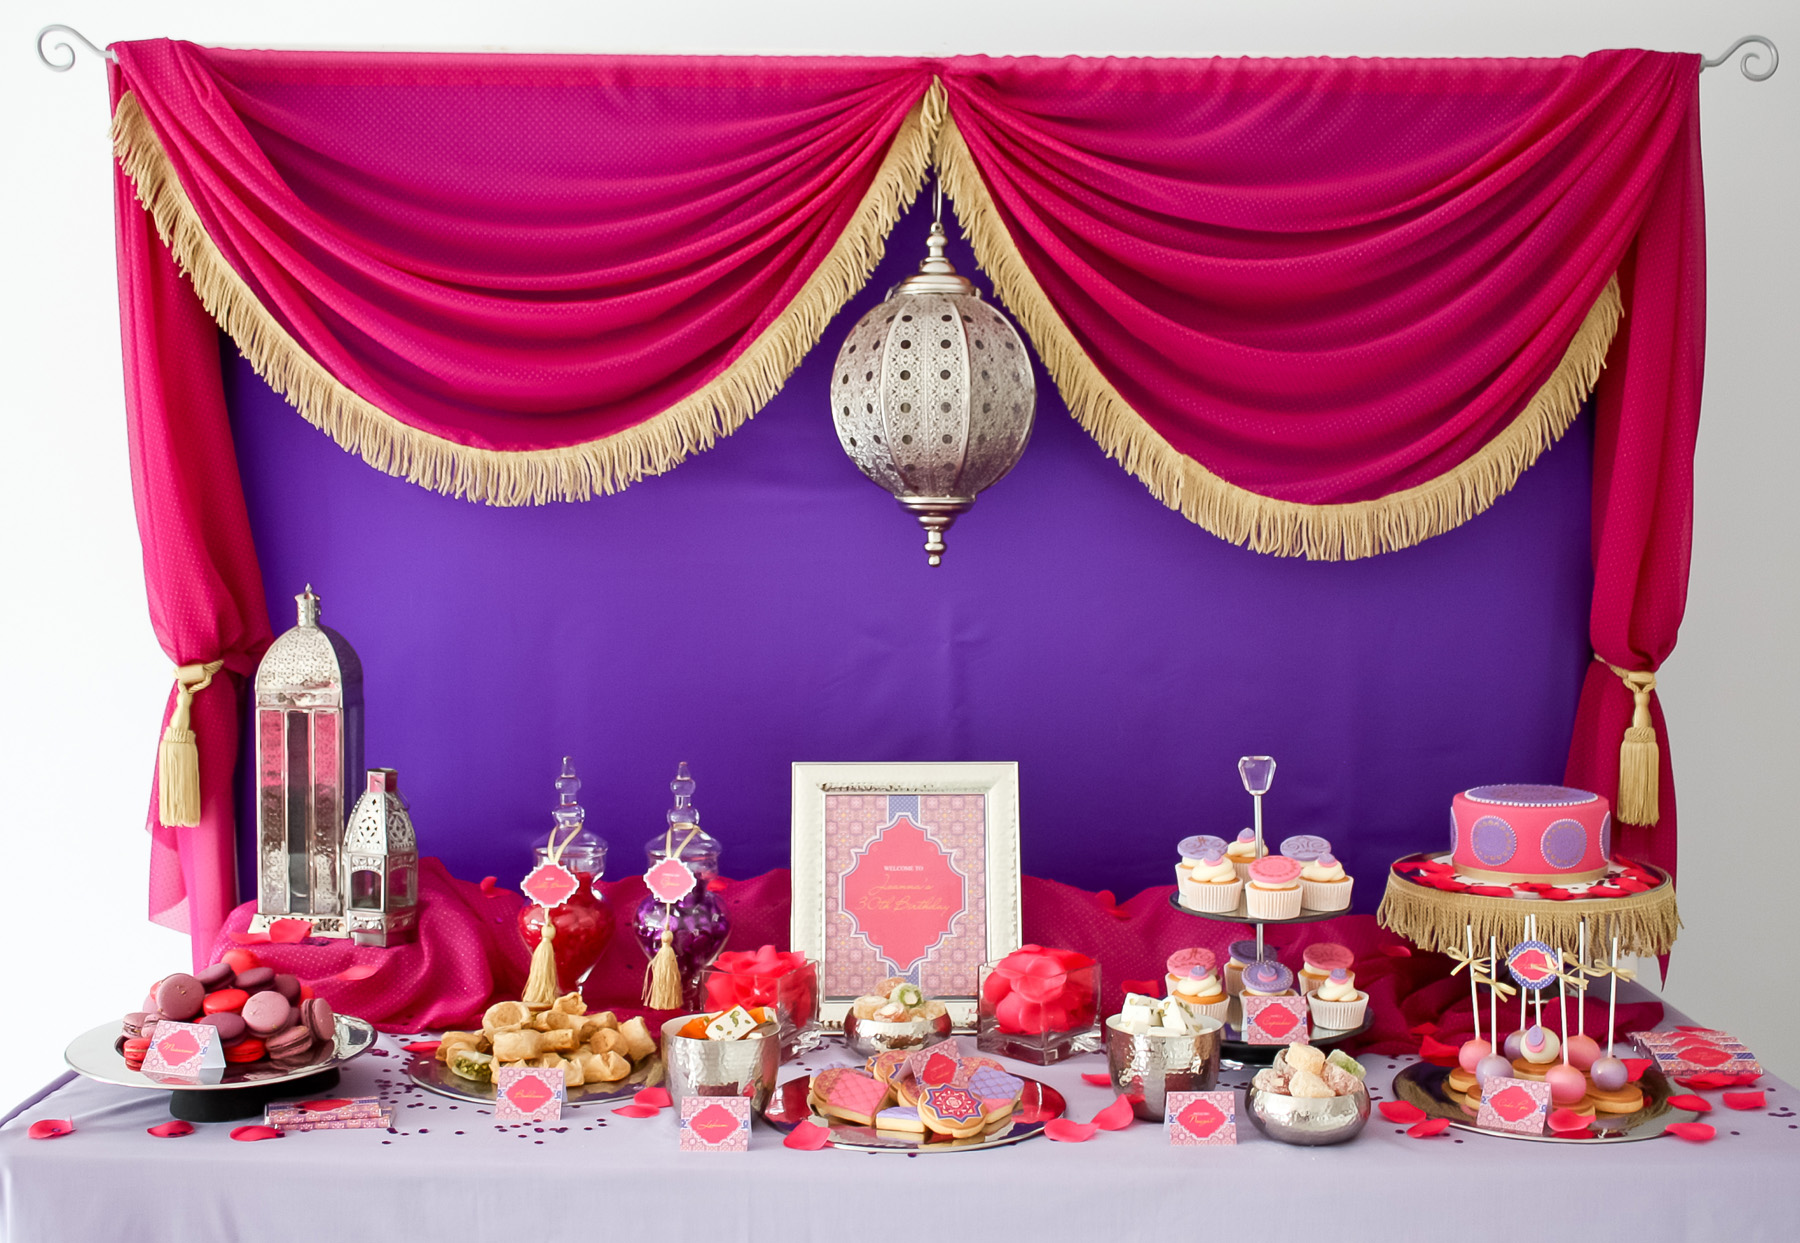 Moroccan Theme Birthday Party, Event By: KisswithStyle